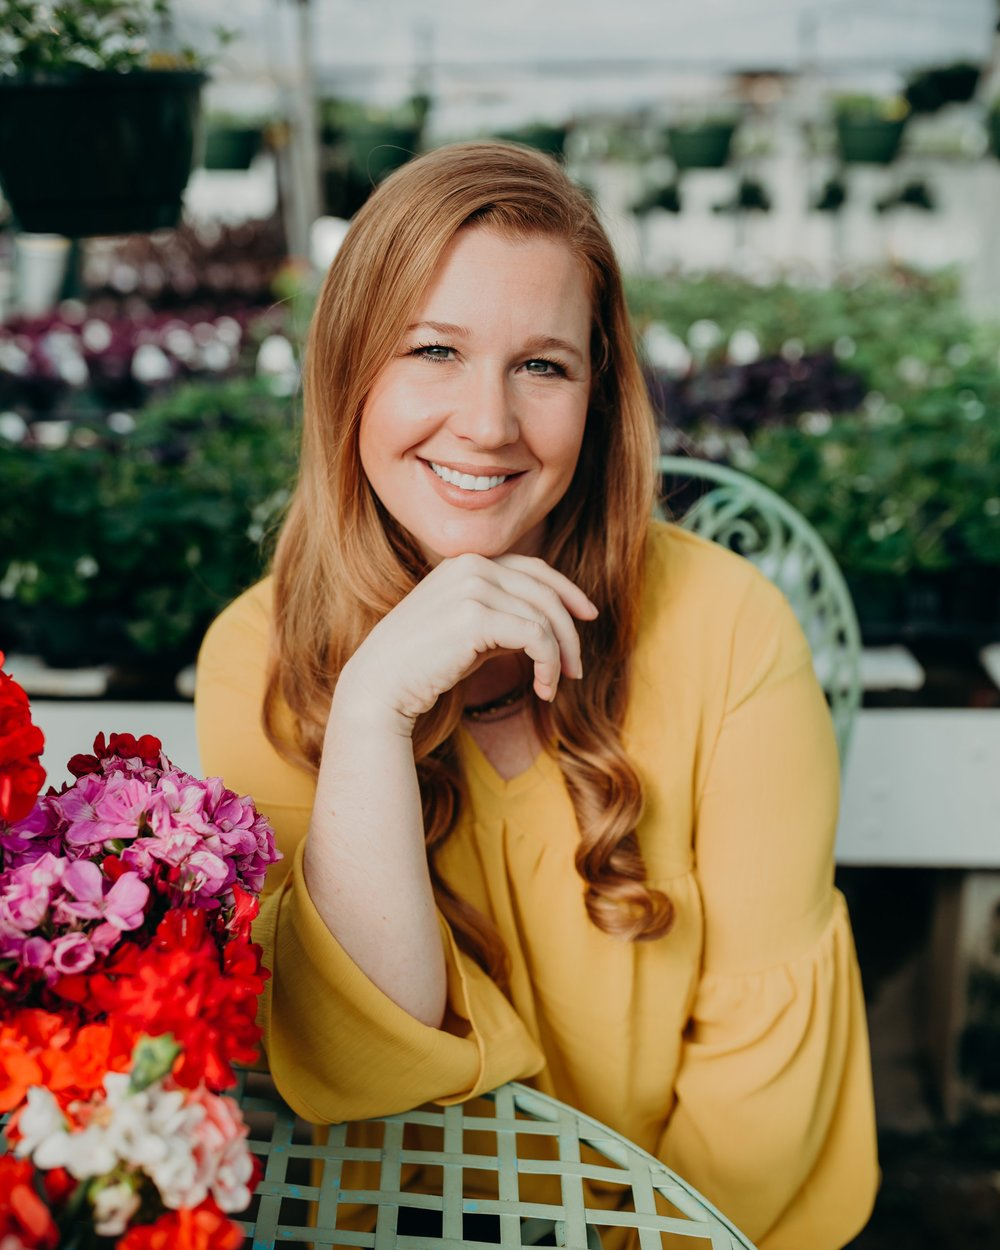 Hi, I'm becca - I've been event planning for as long as I can remember. I love to create beautiful spaces, seamless timelines, and come up with creative and functional ideas. But, more than anything, I want my clients to have a joyful experience. My natural demeanor is to be calm and helpful and my goal is to marry those characteristics with organization skills that allow my clients to have a stress-free and super fun day.Let's chat about how Social Graces can help your special day be filled with joyful moments that you will remember forever.